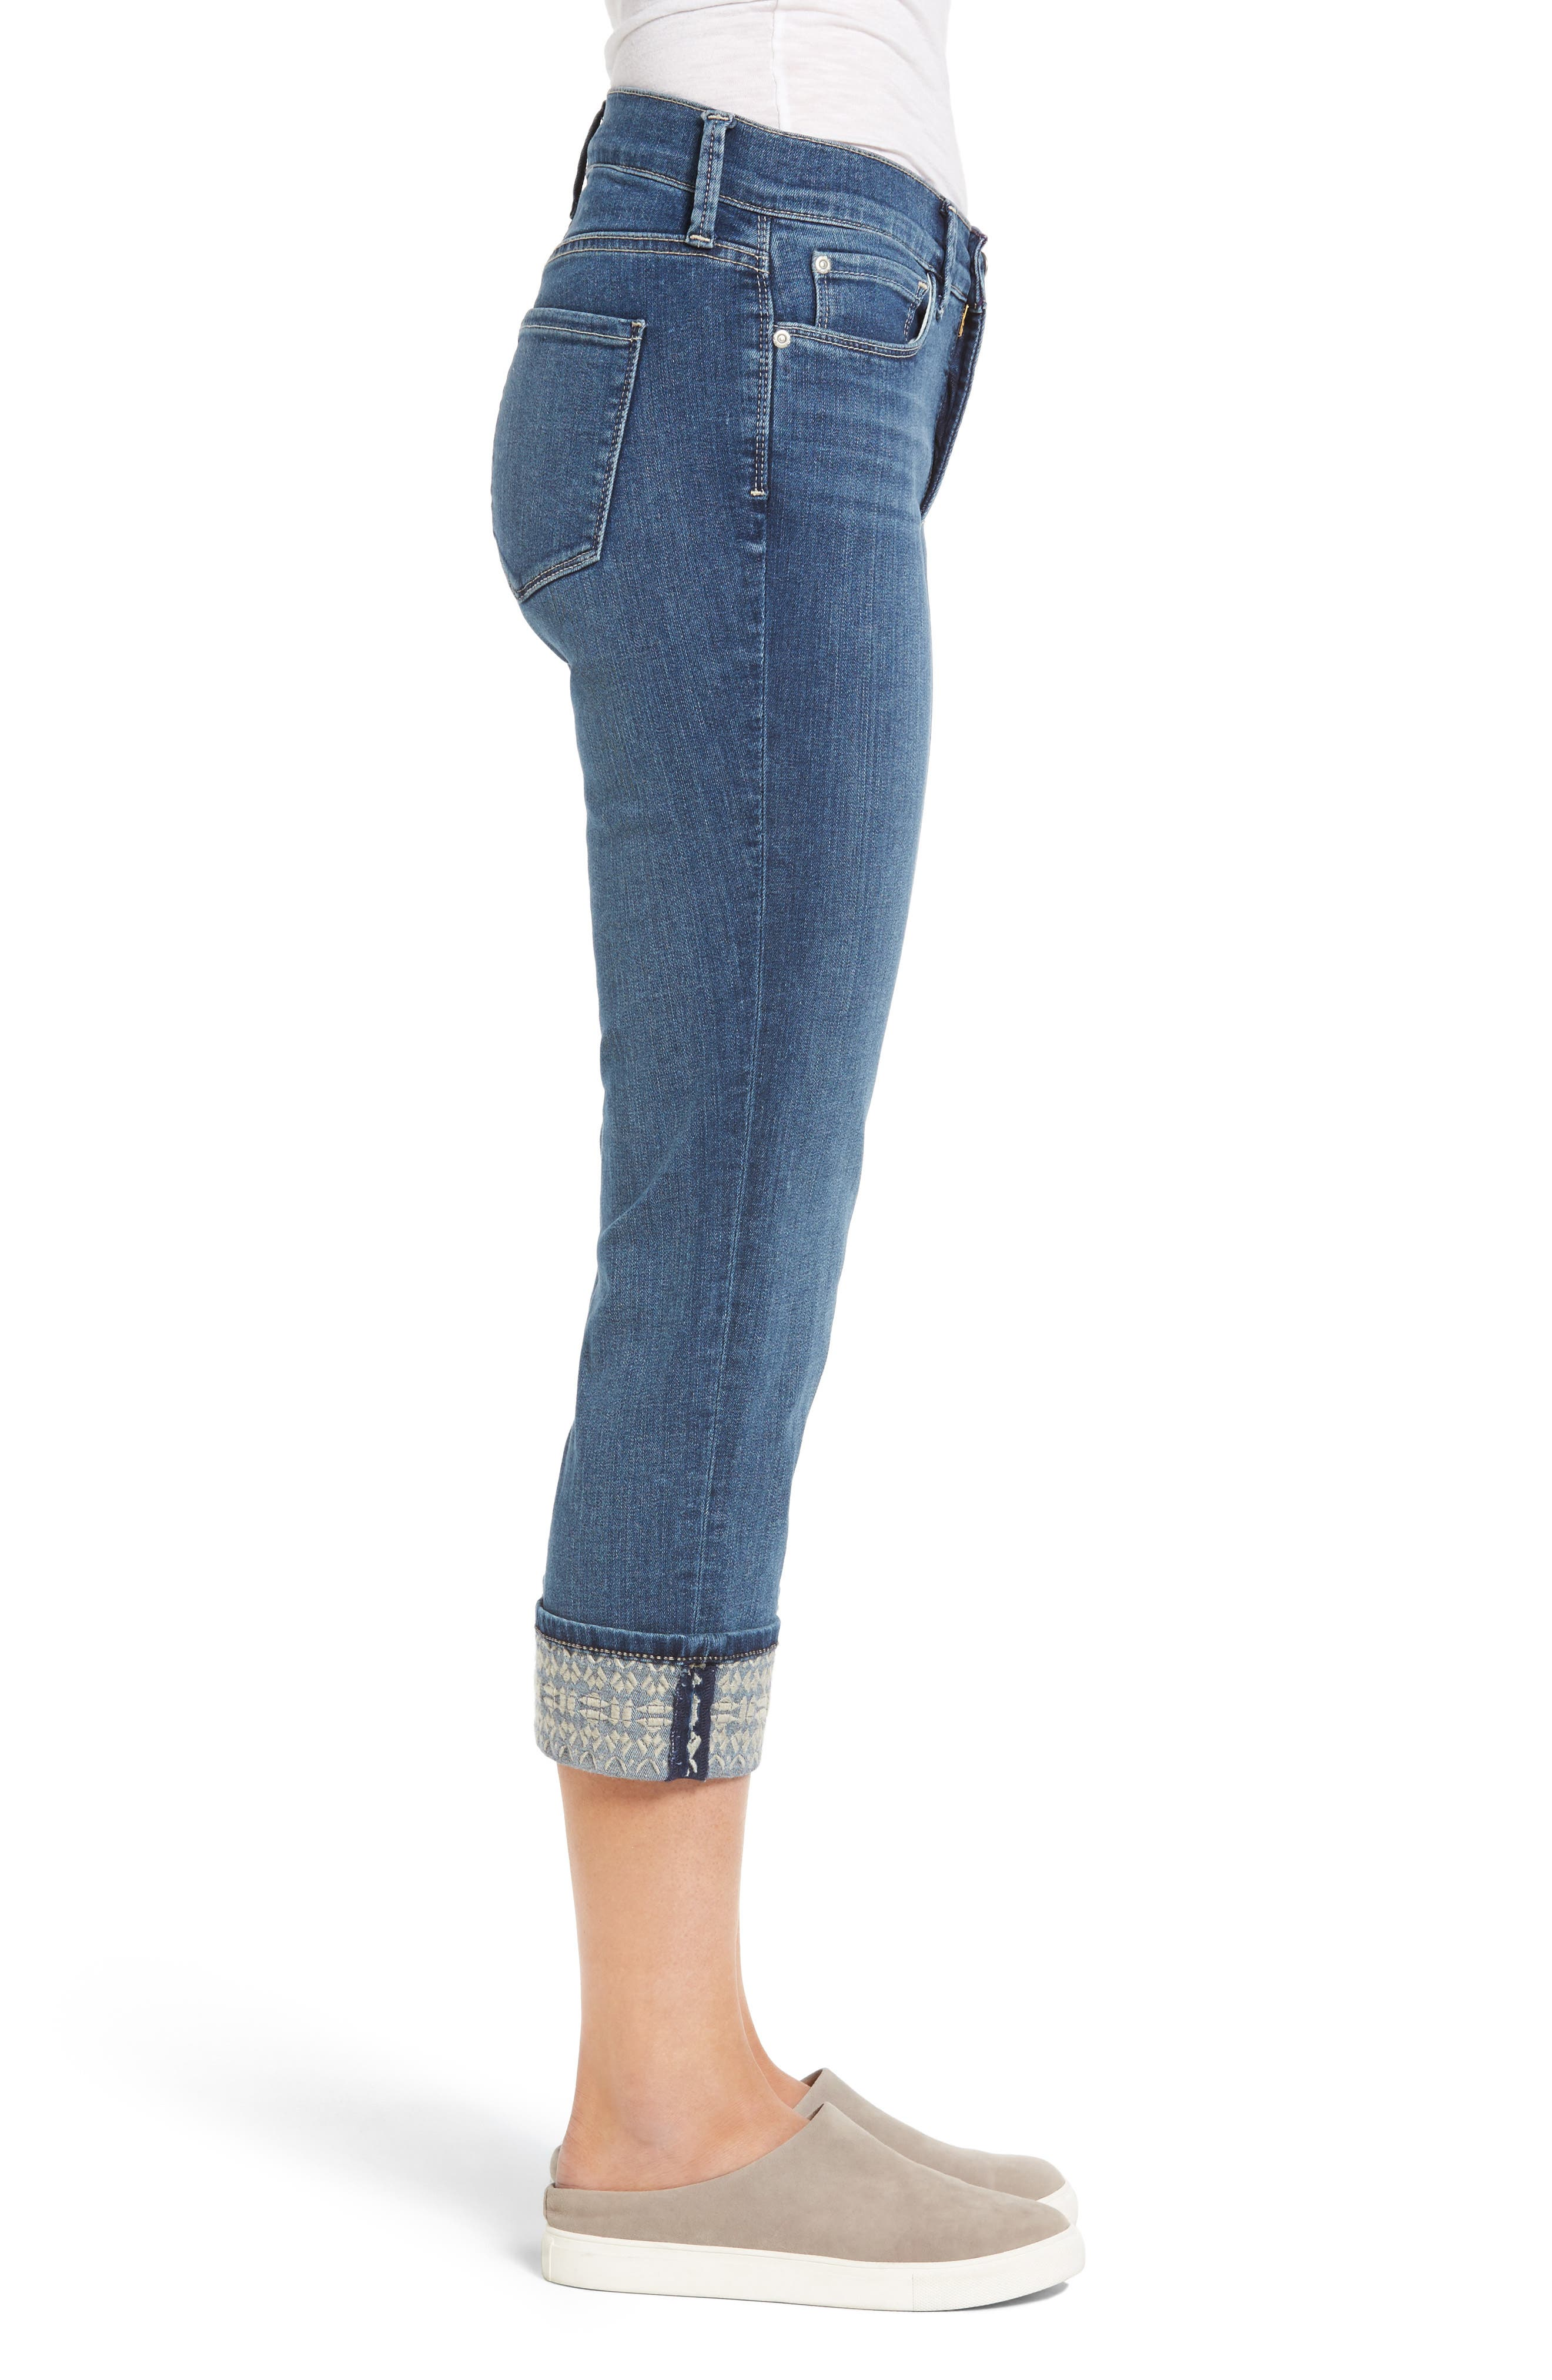 Alternate Image 3  - NYDJ Dayla Embroidered Wide Cuff Capri Jeans (Heyburn)